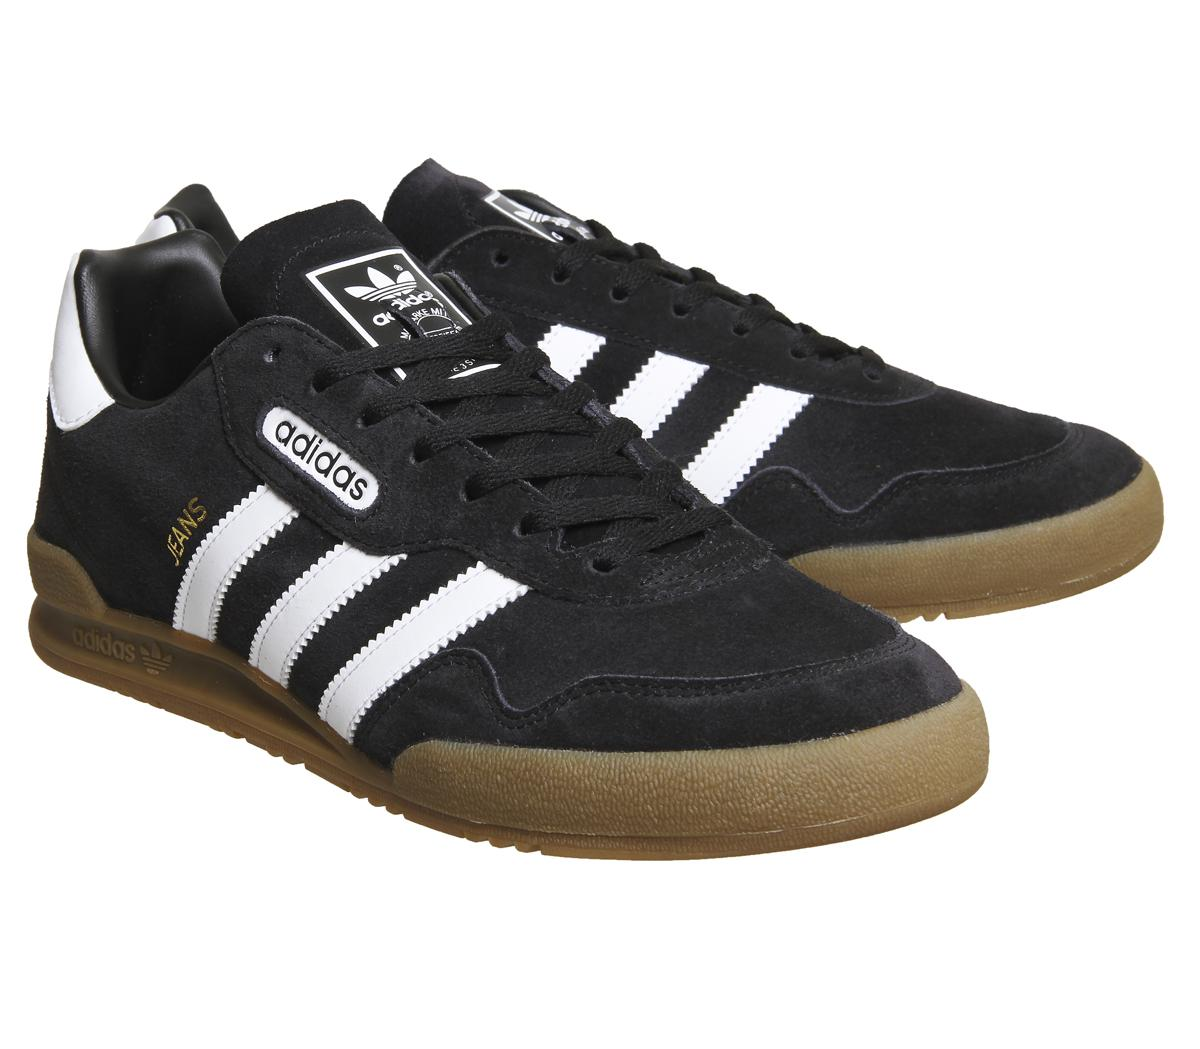 adidas Denim Jeans Super Trainers in Black White (Black) for Men